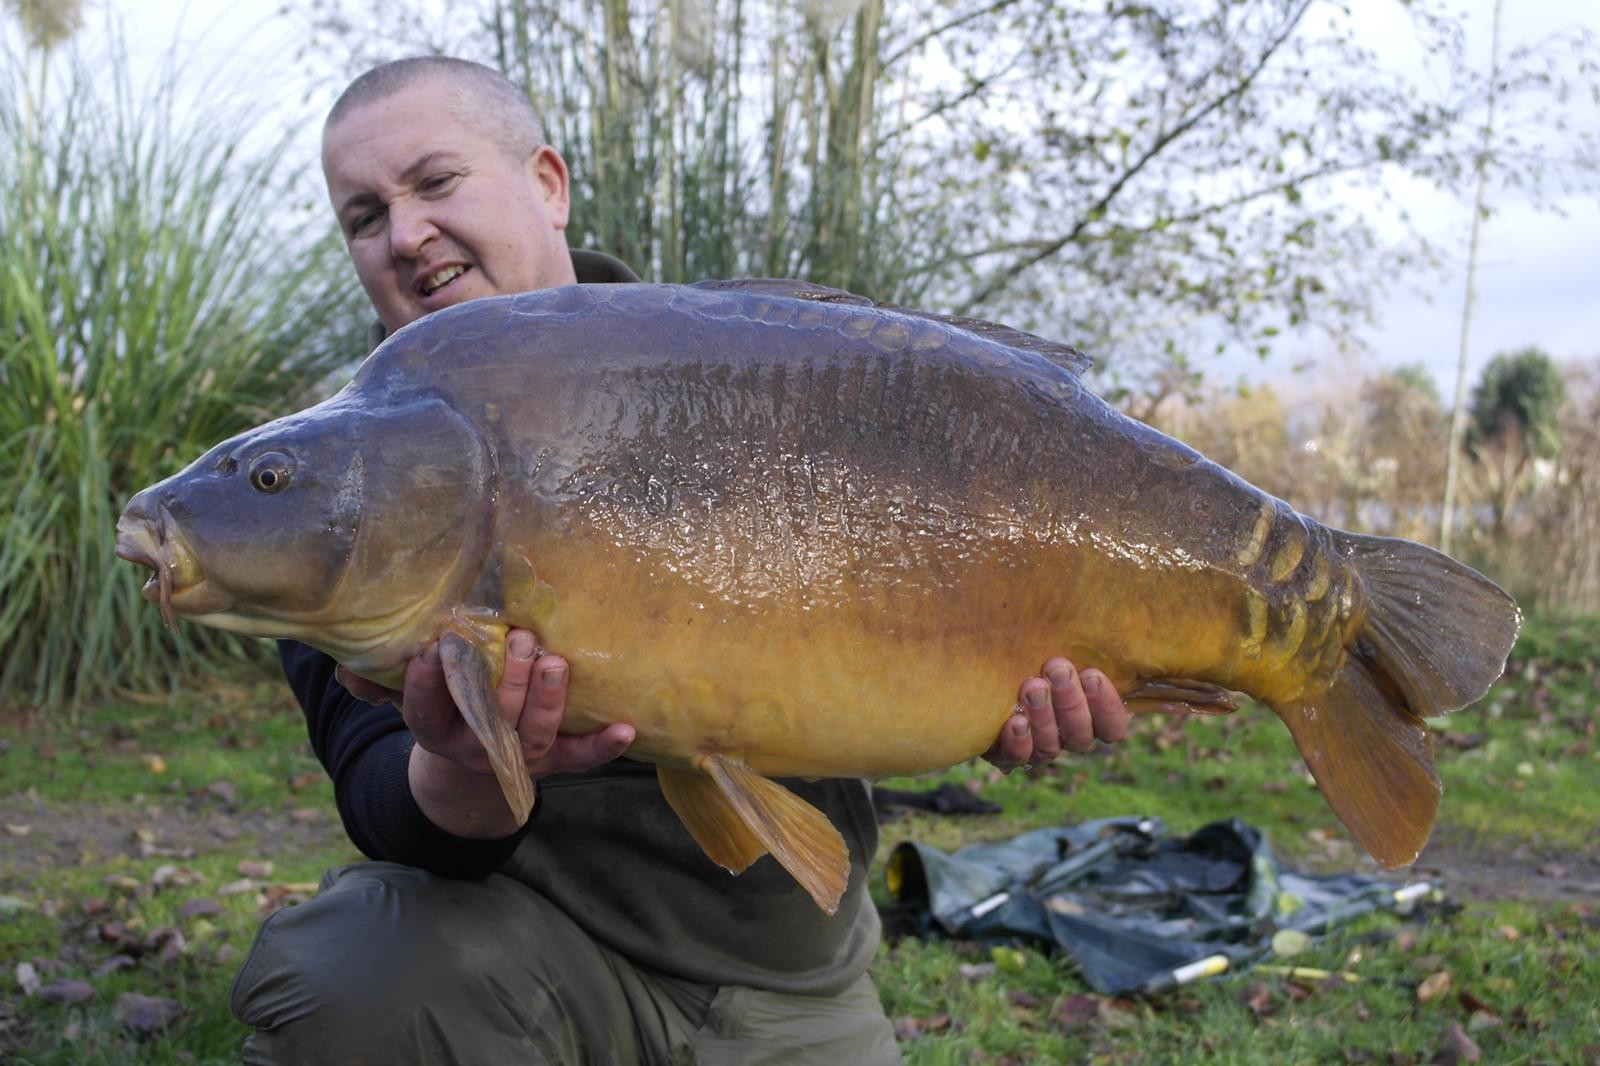 34lb 0oz 'Danny Armitage Mirror'  caught on